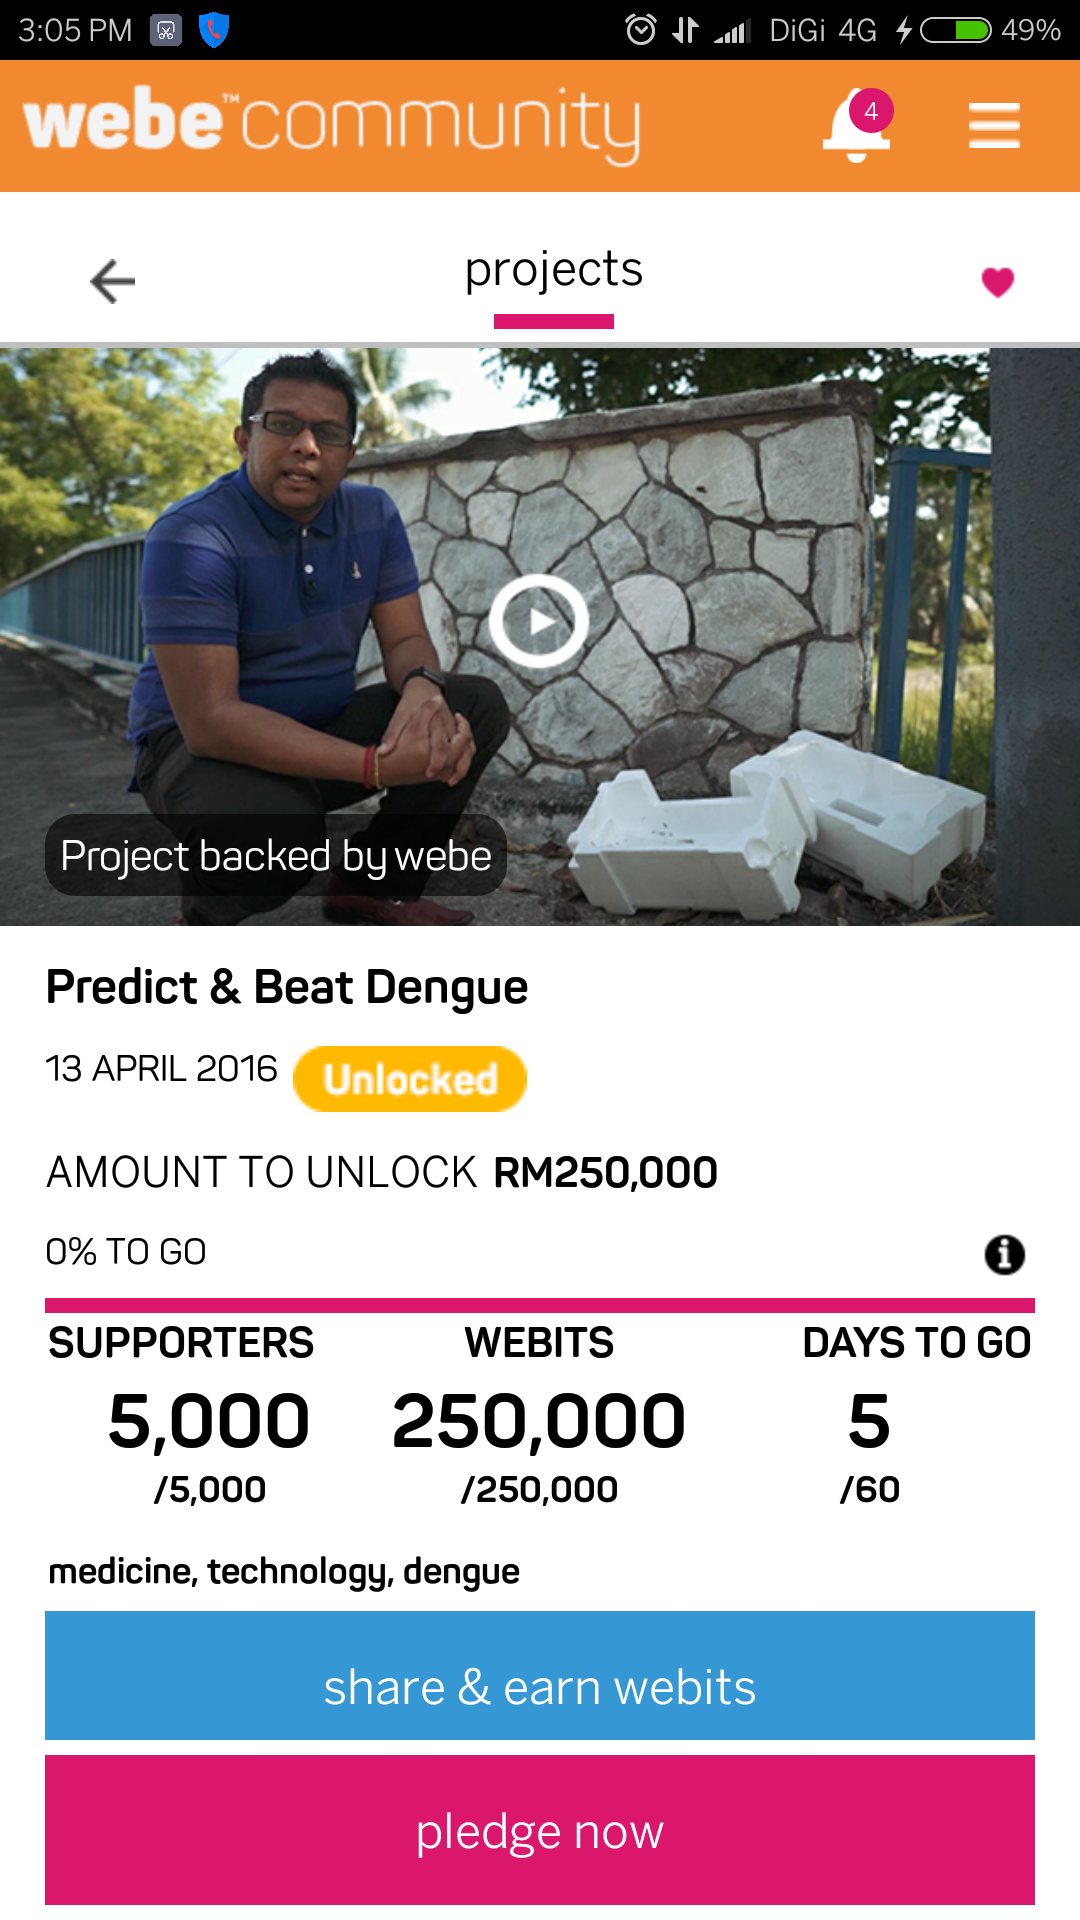 webe community dengue app